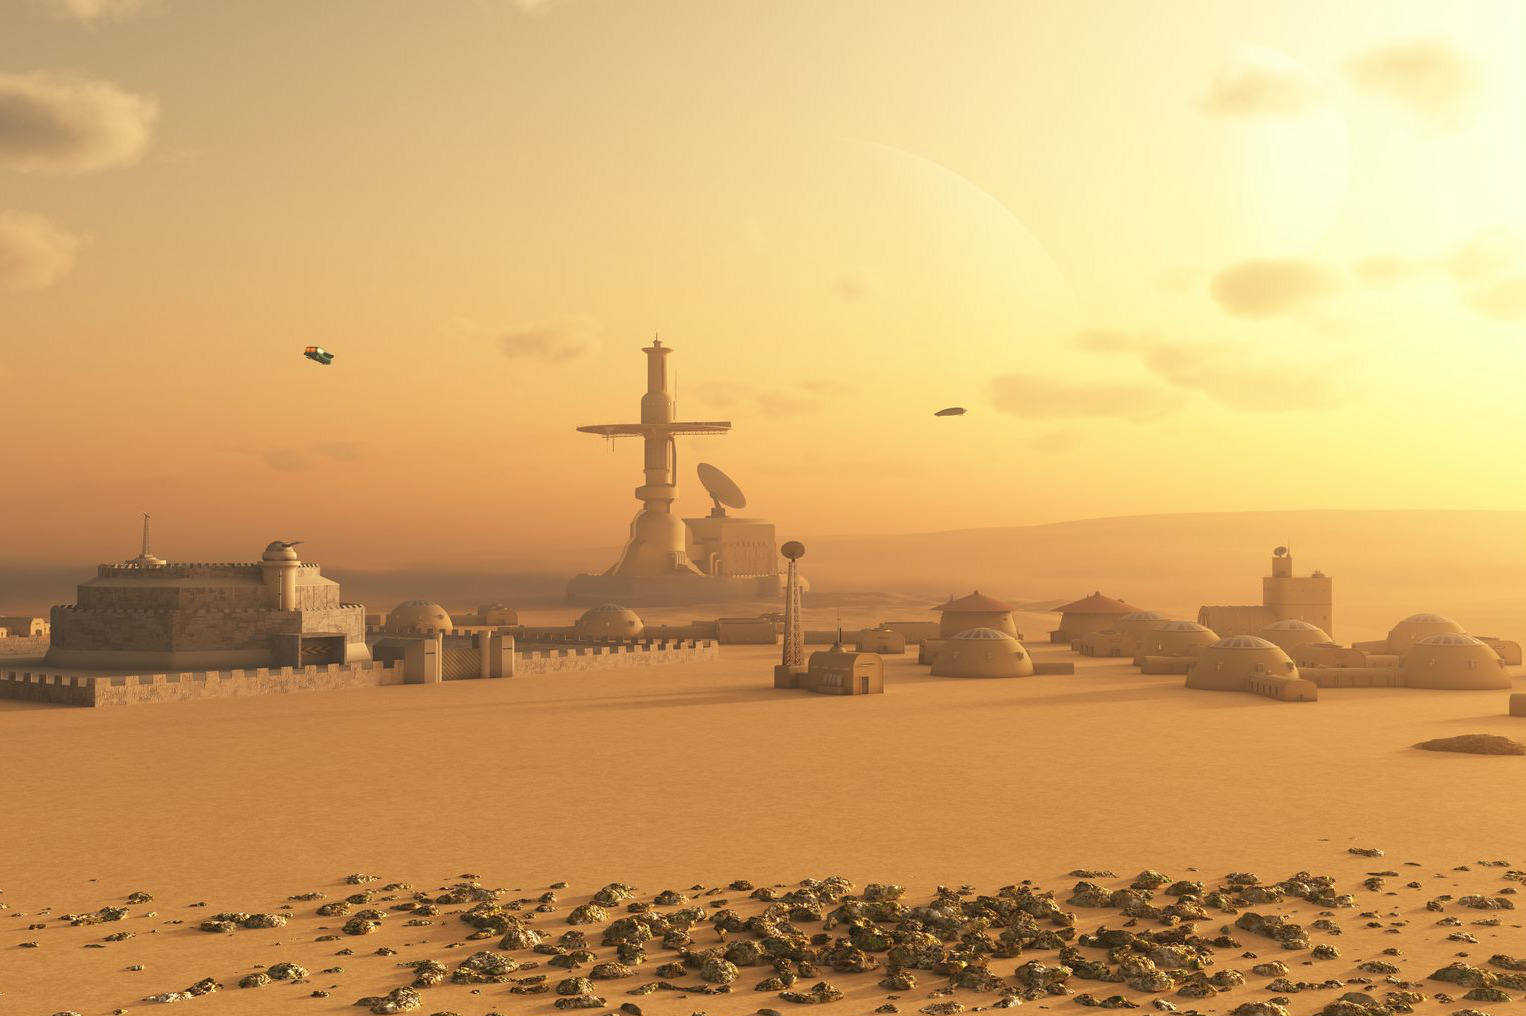 spacex manned mars mission - photo #1